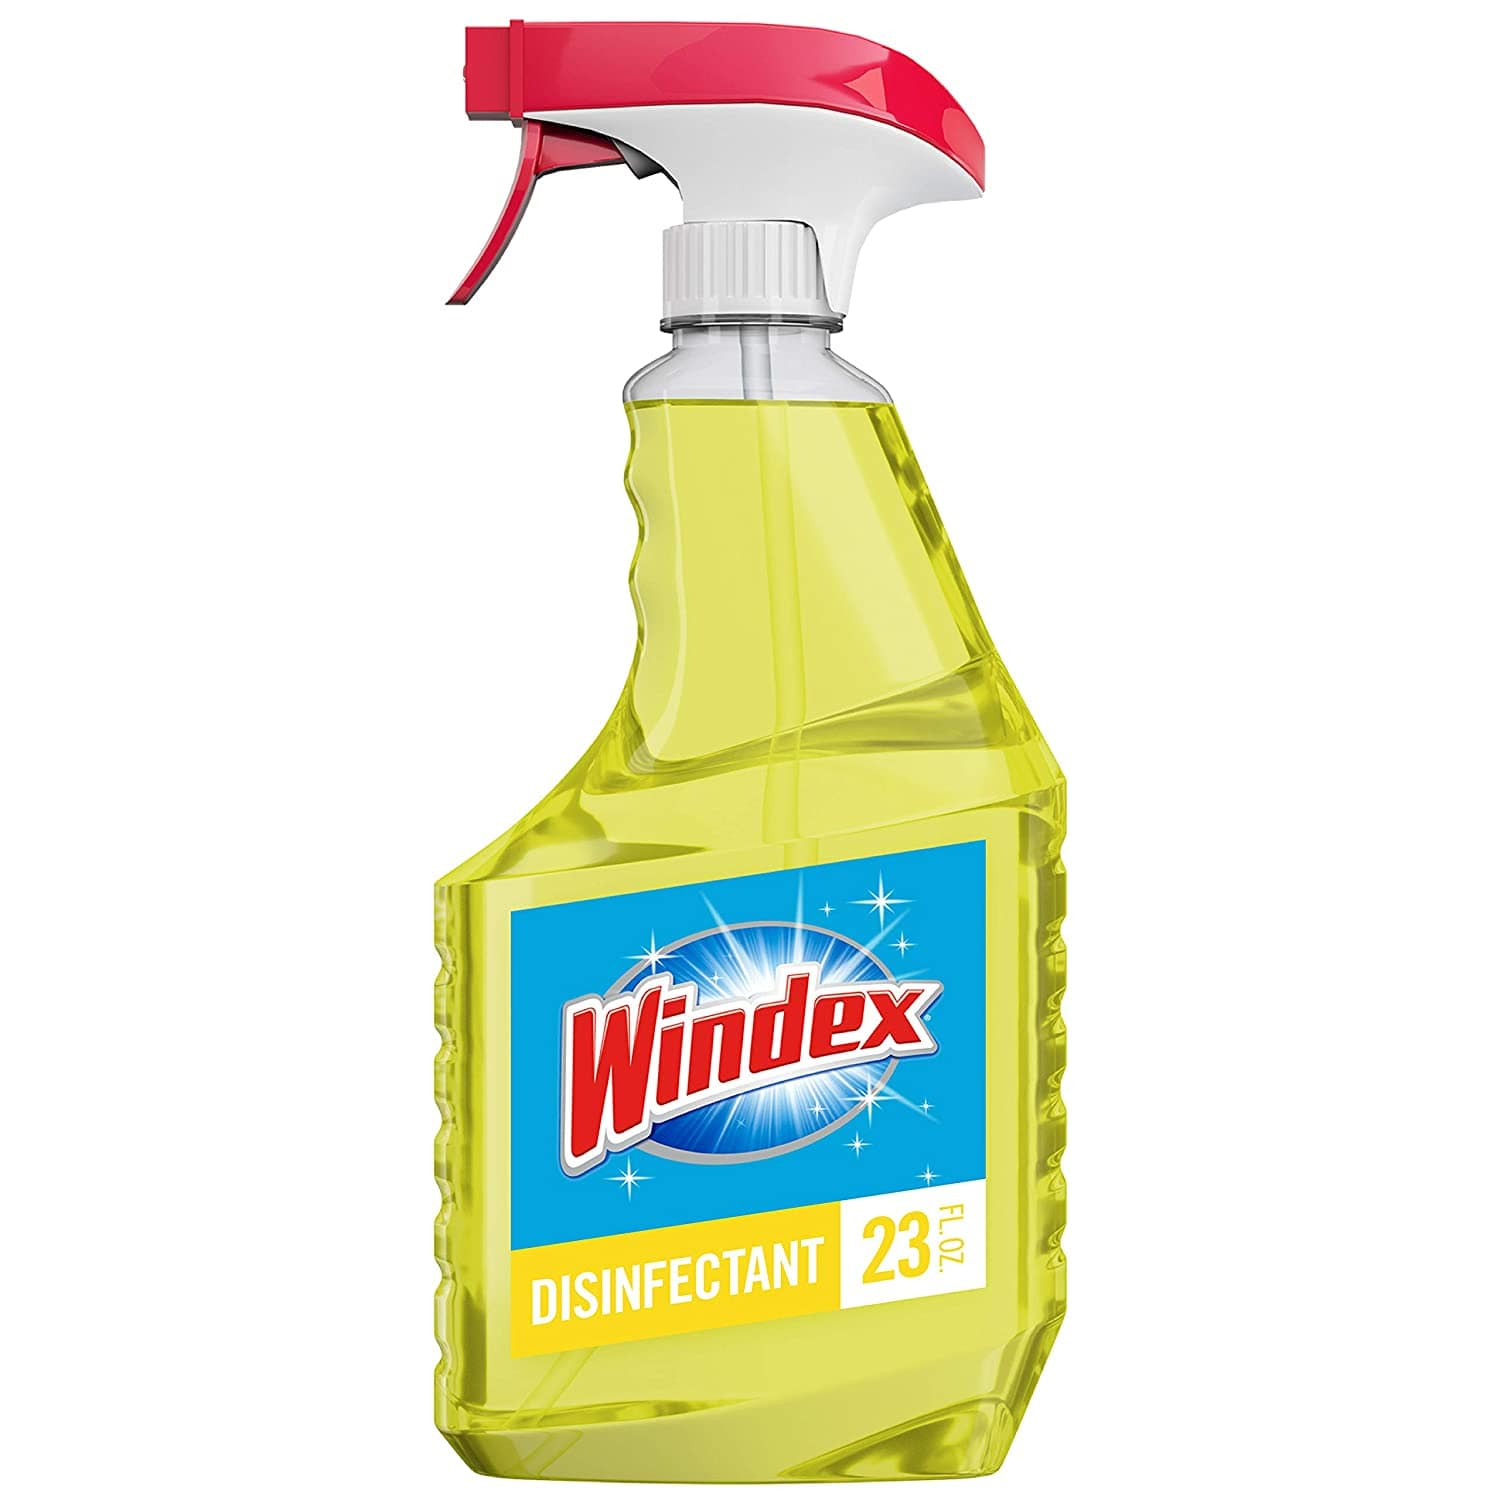 Windex Multi-Surface Cleaner and Disinfectant Spray Bottle, Citrus Fresh Scent, 23 fl oz  $3.48